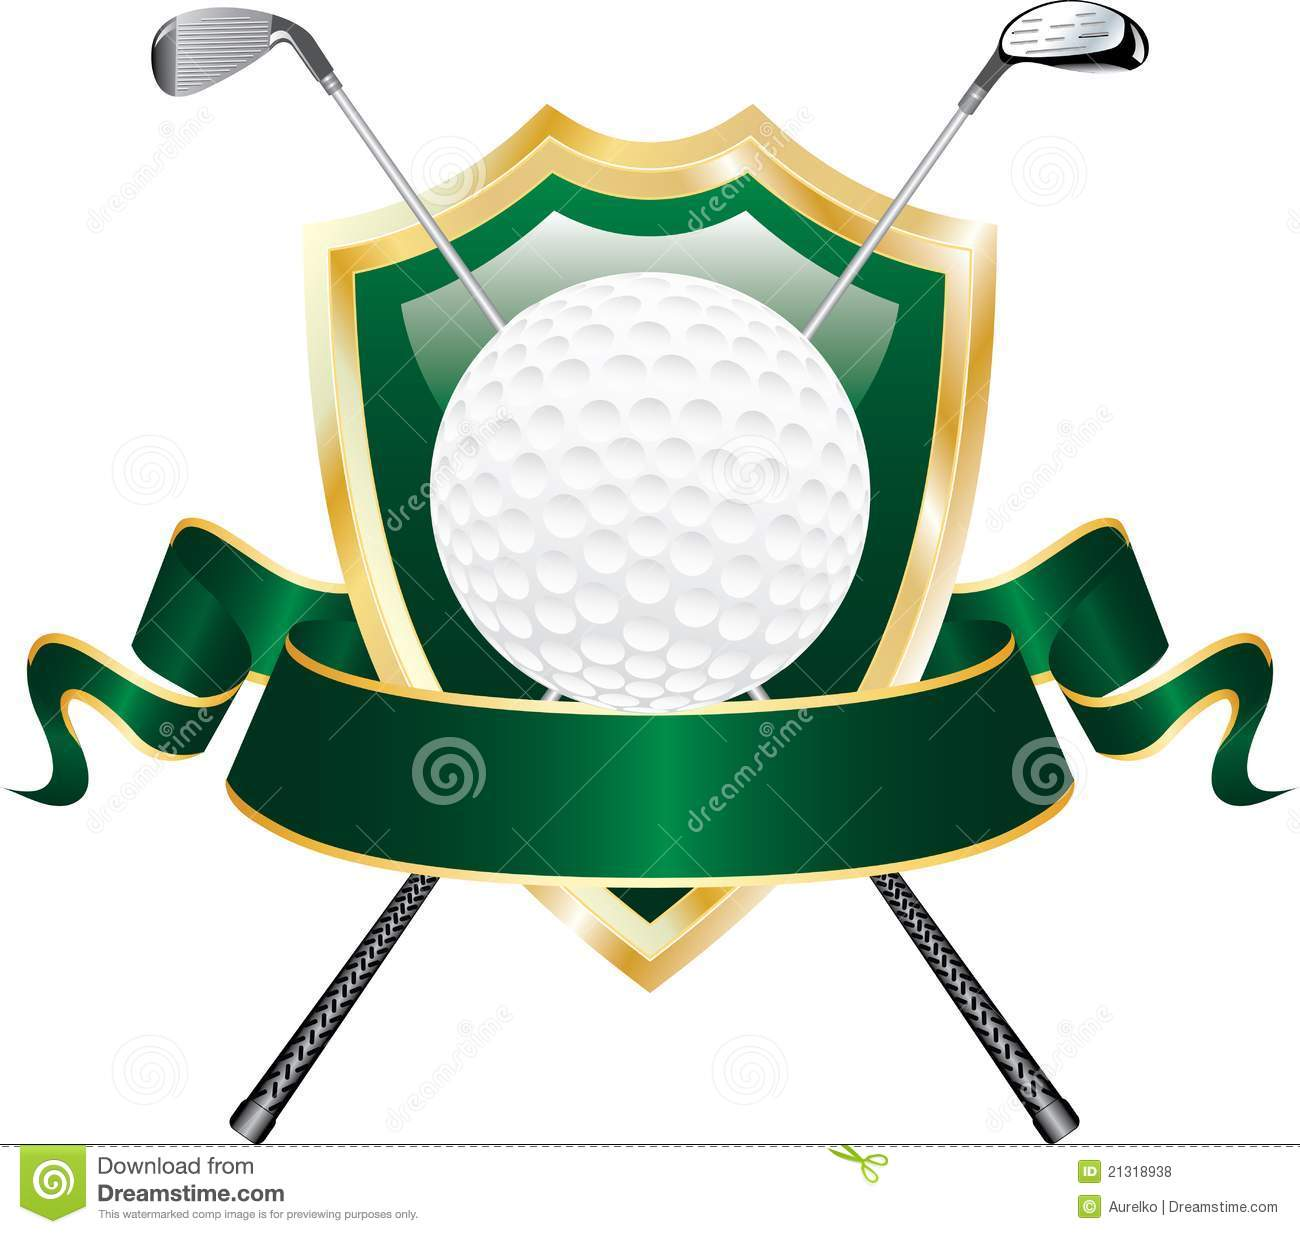 golf clipart at getdrawings com free for personal use golf clipart